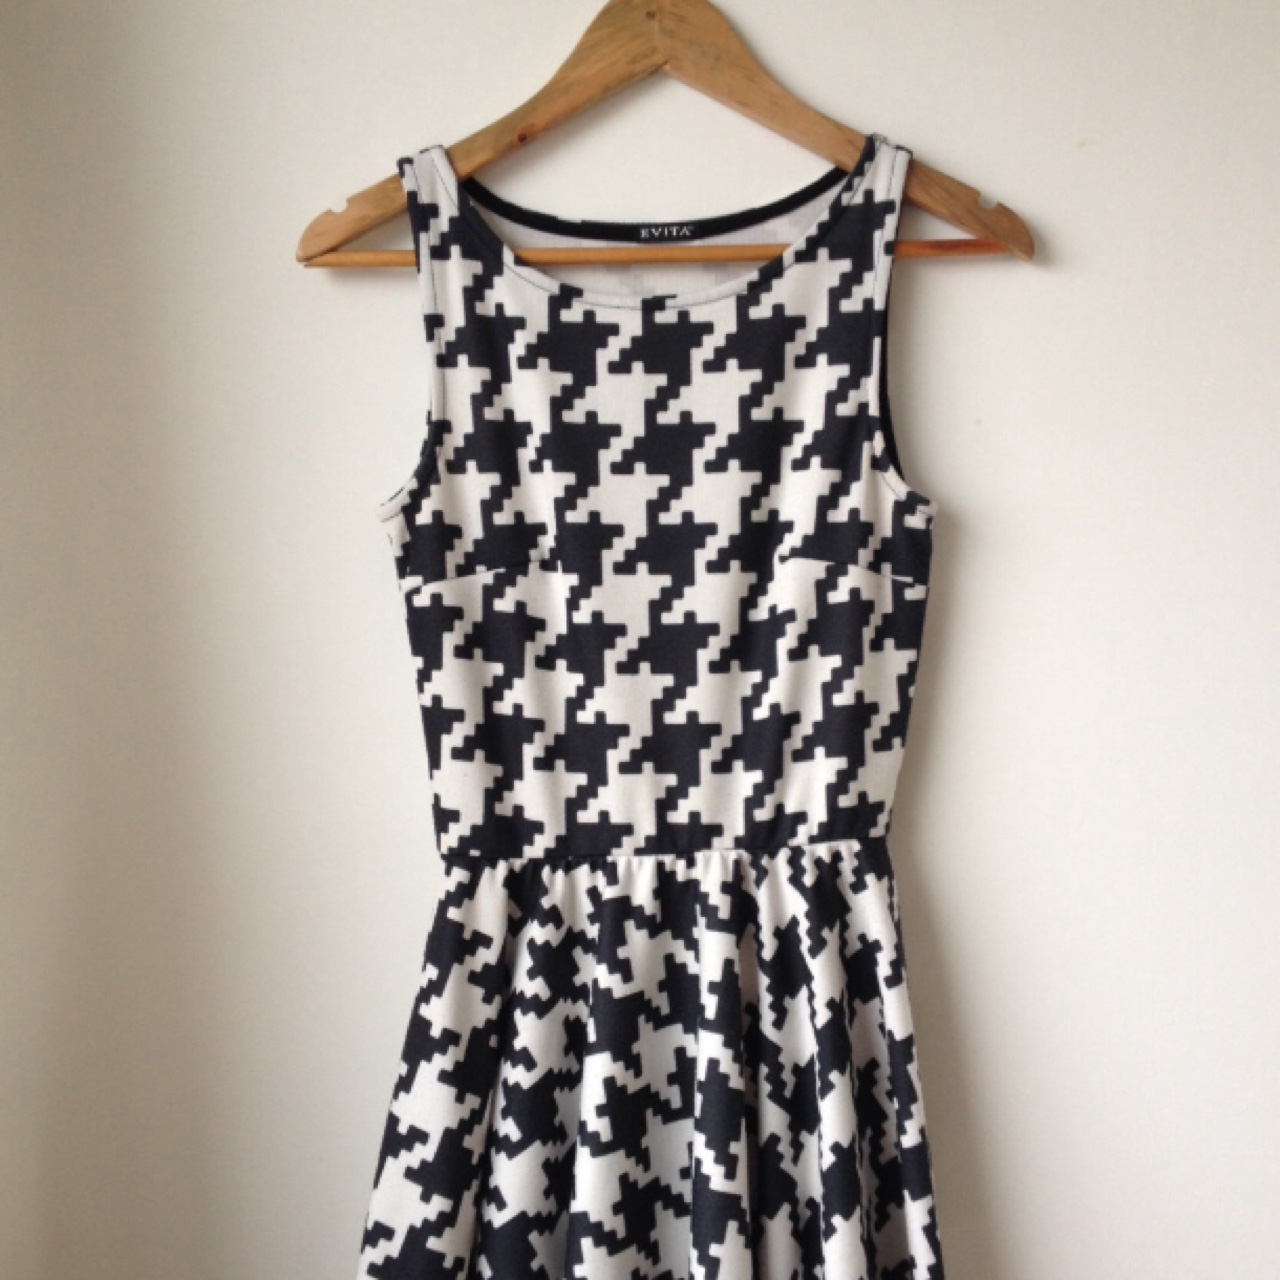 90s black and white skater dress. With